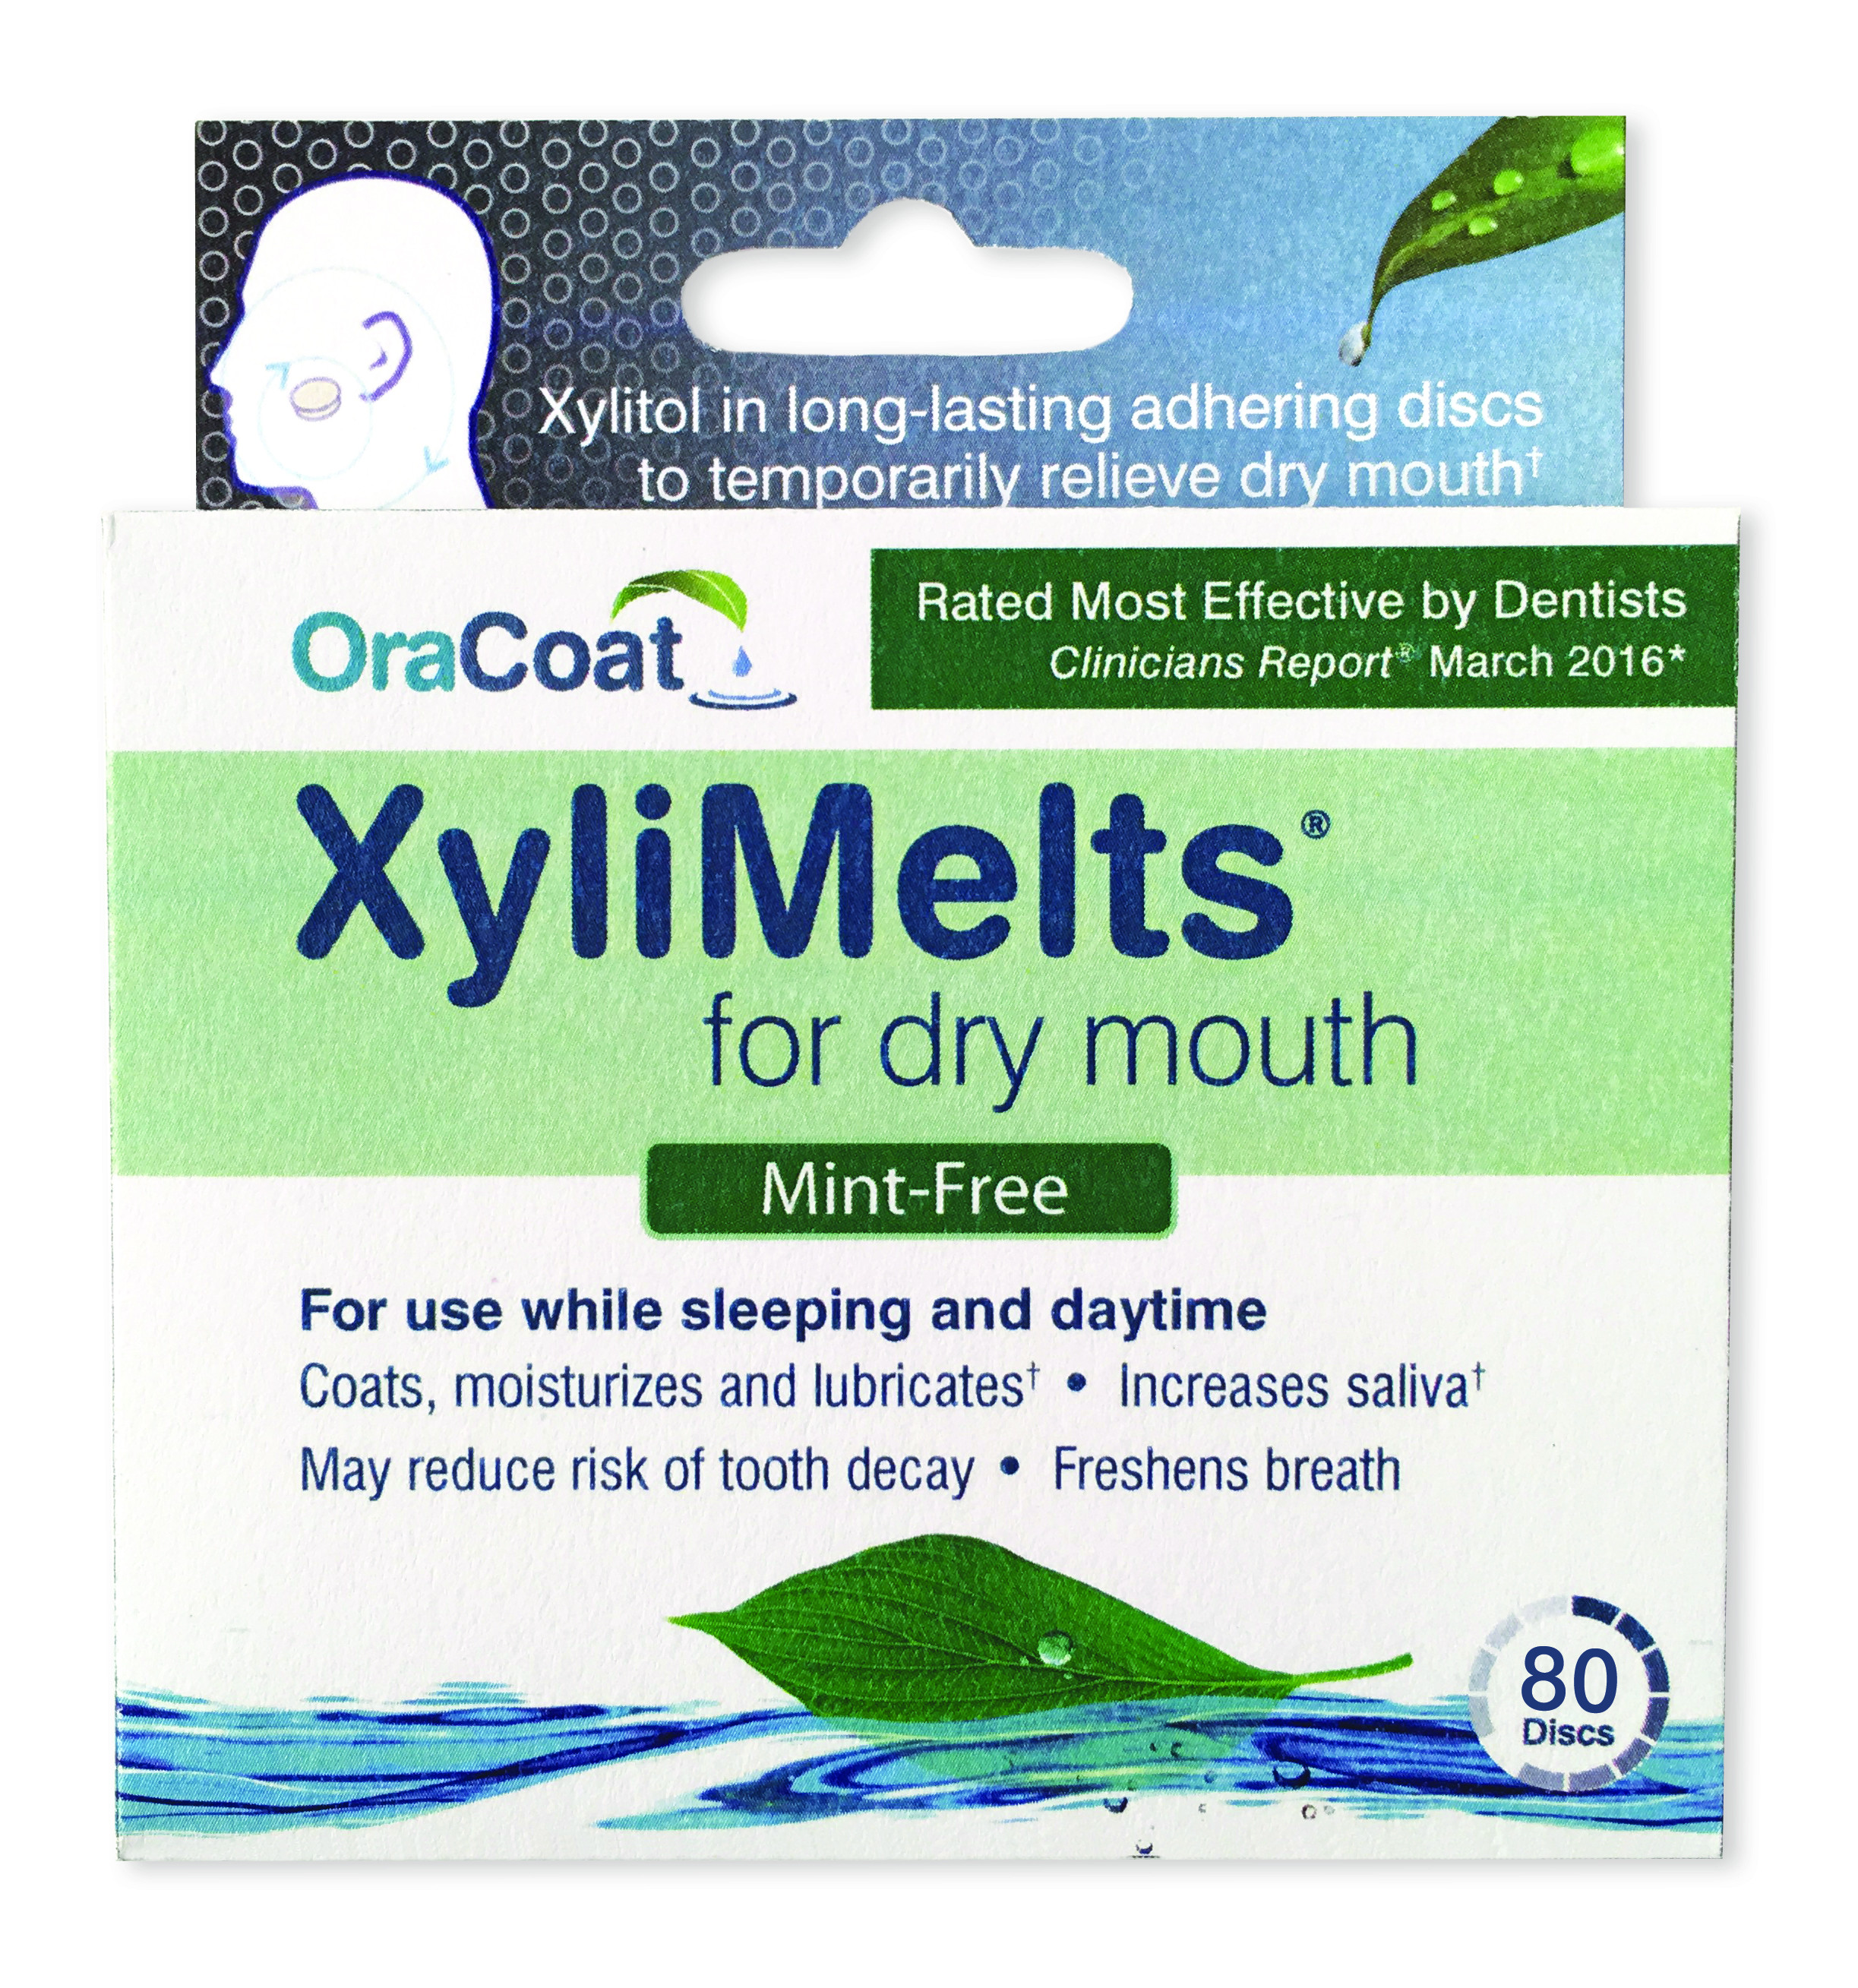 OraCoat XyliMelts for dry mouth, Mint Free, 80 ct Box